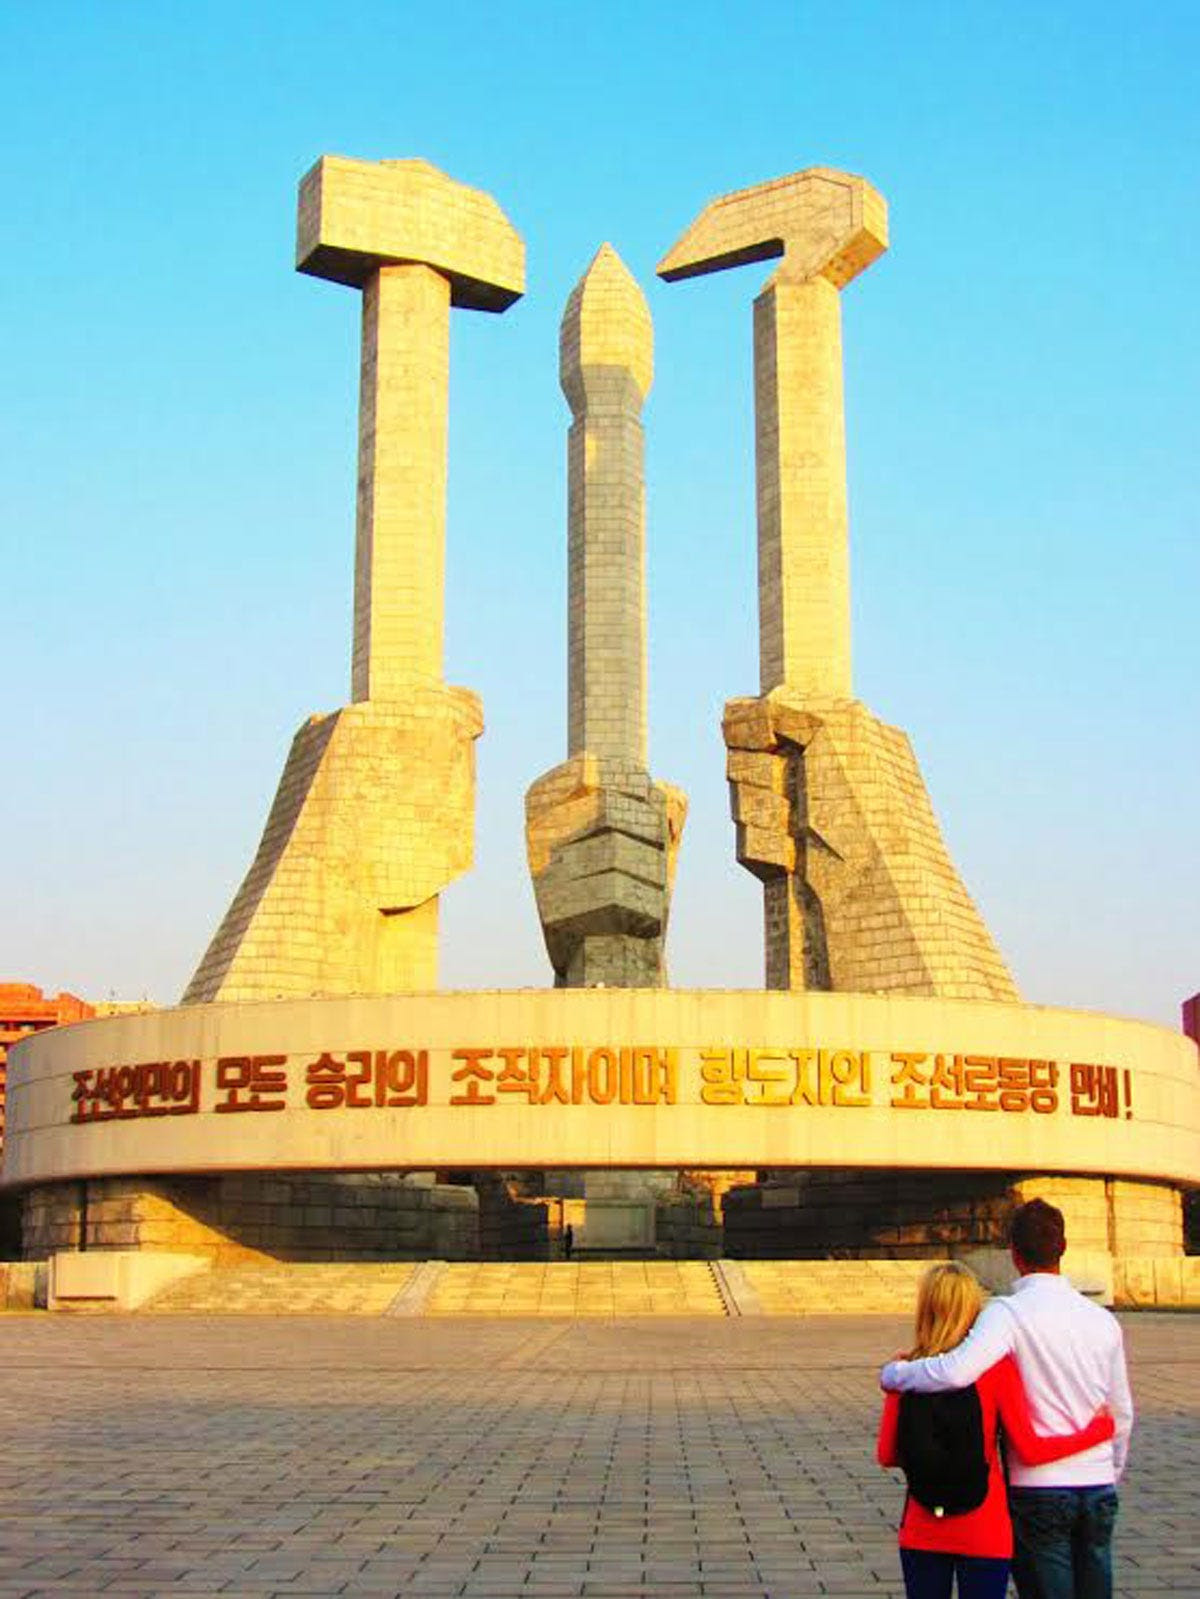 They checked out the massive Monument to the Party Founding in Pyongyang, which commemorates the 1946 creation of the Workers' Party of Korea.